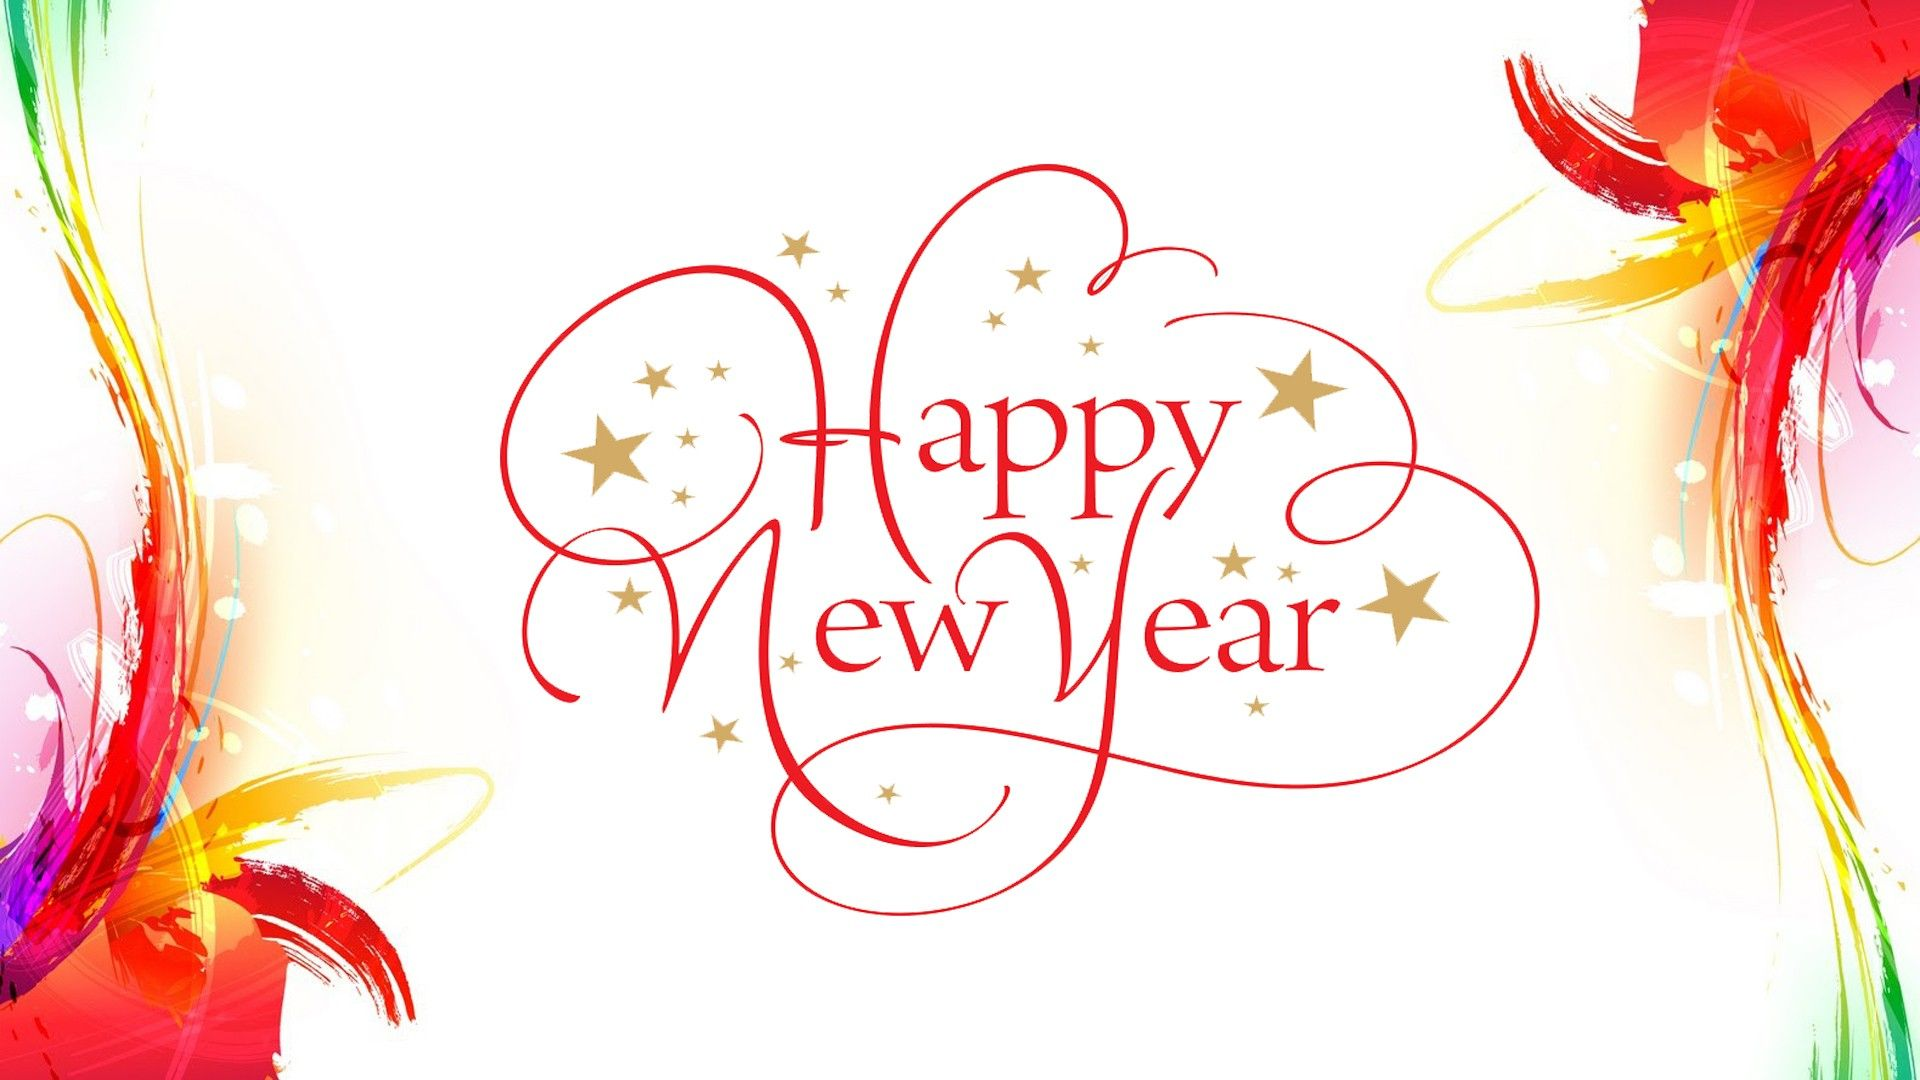 Happy-New-Year-Banner-Background-Images-2018.jpg (1920×1080 ...